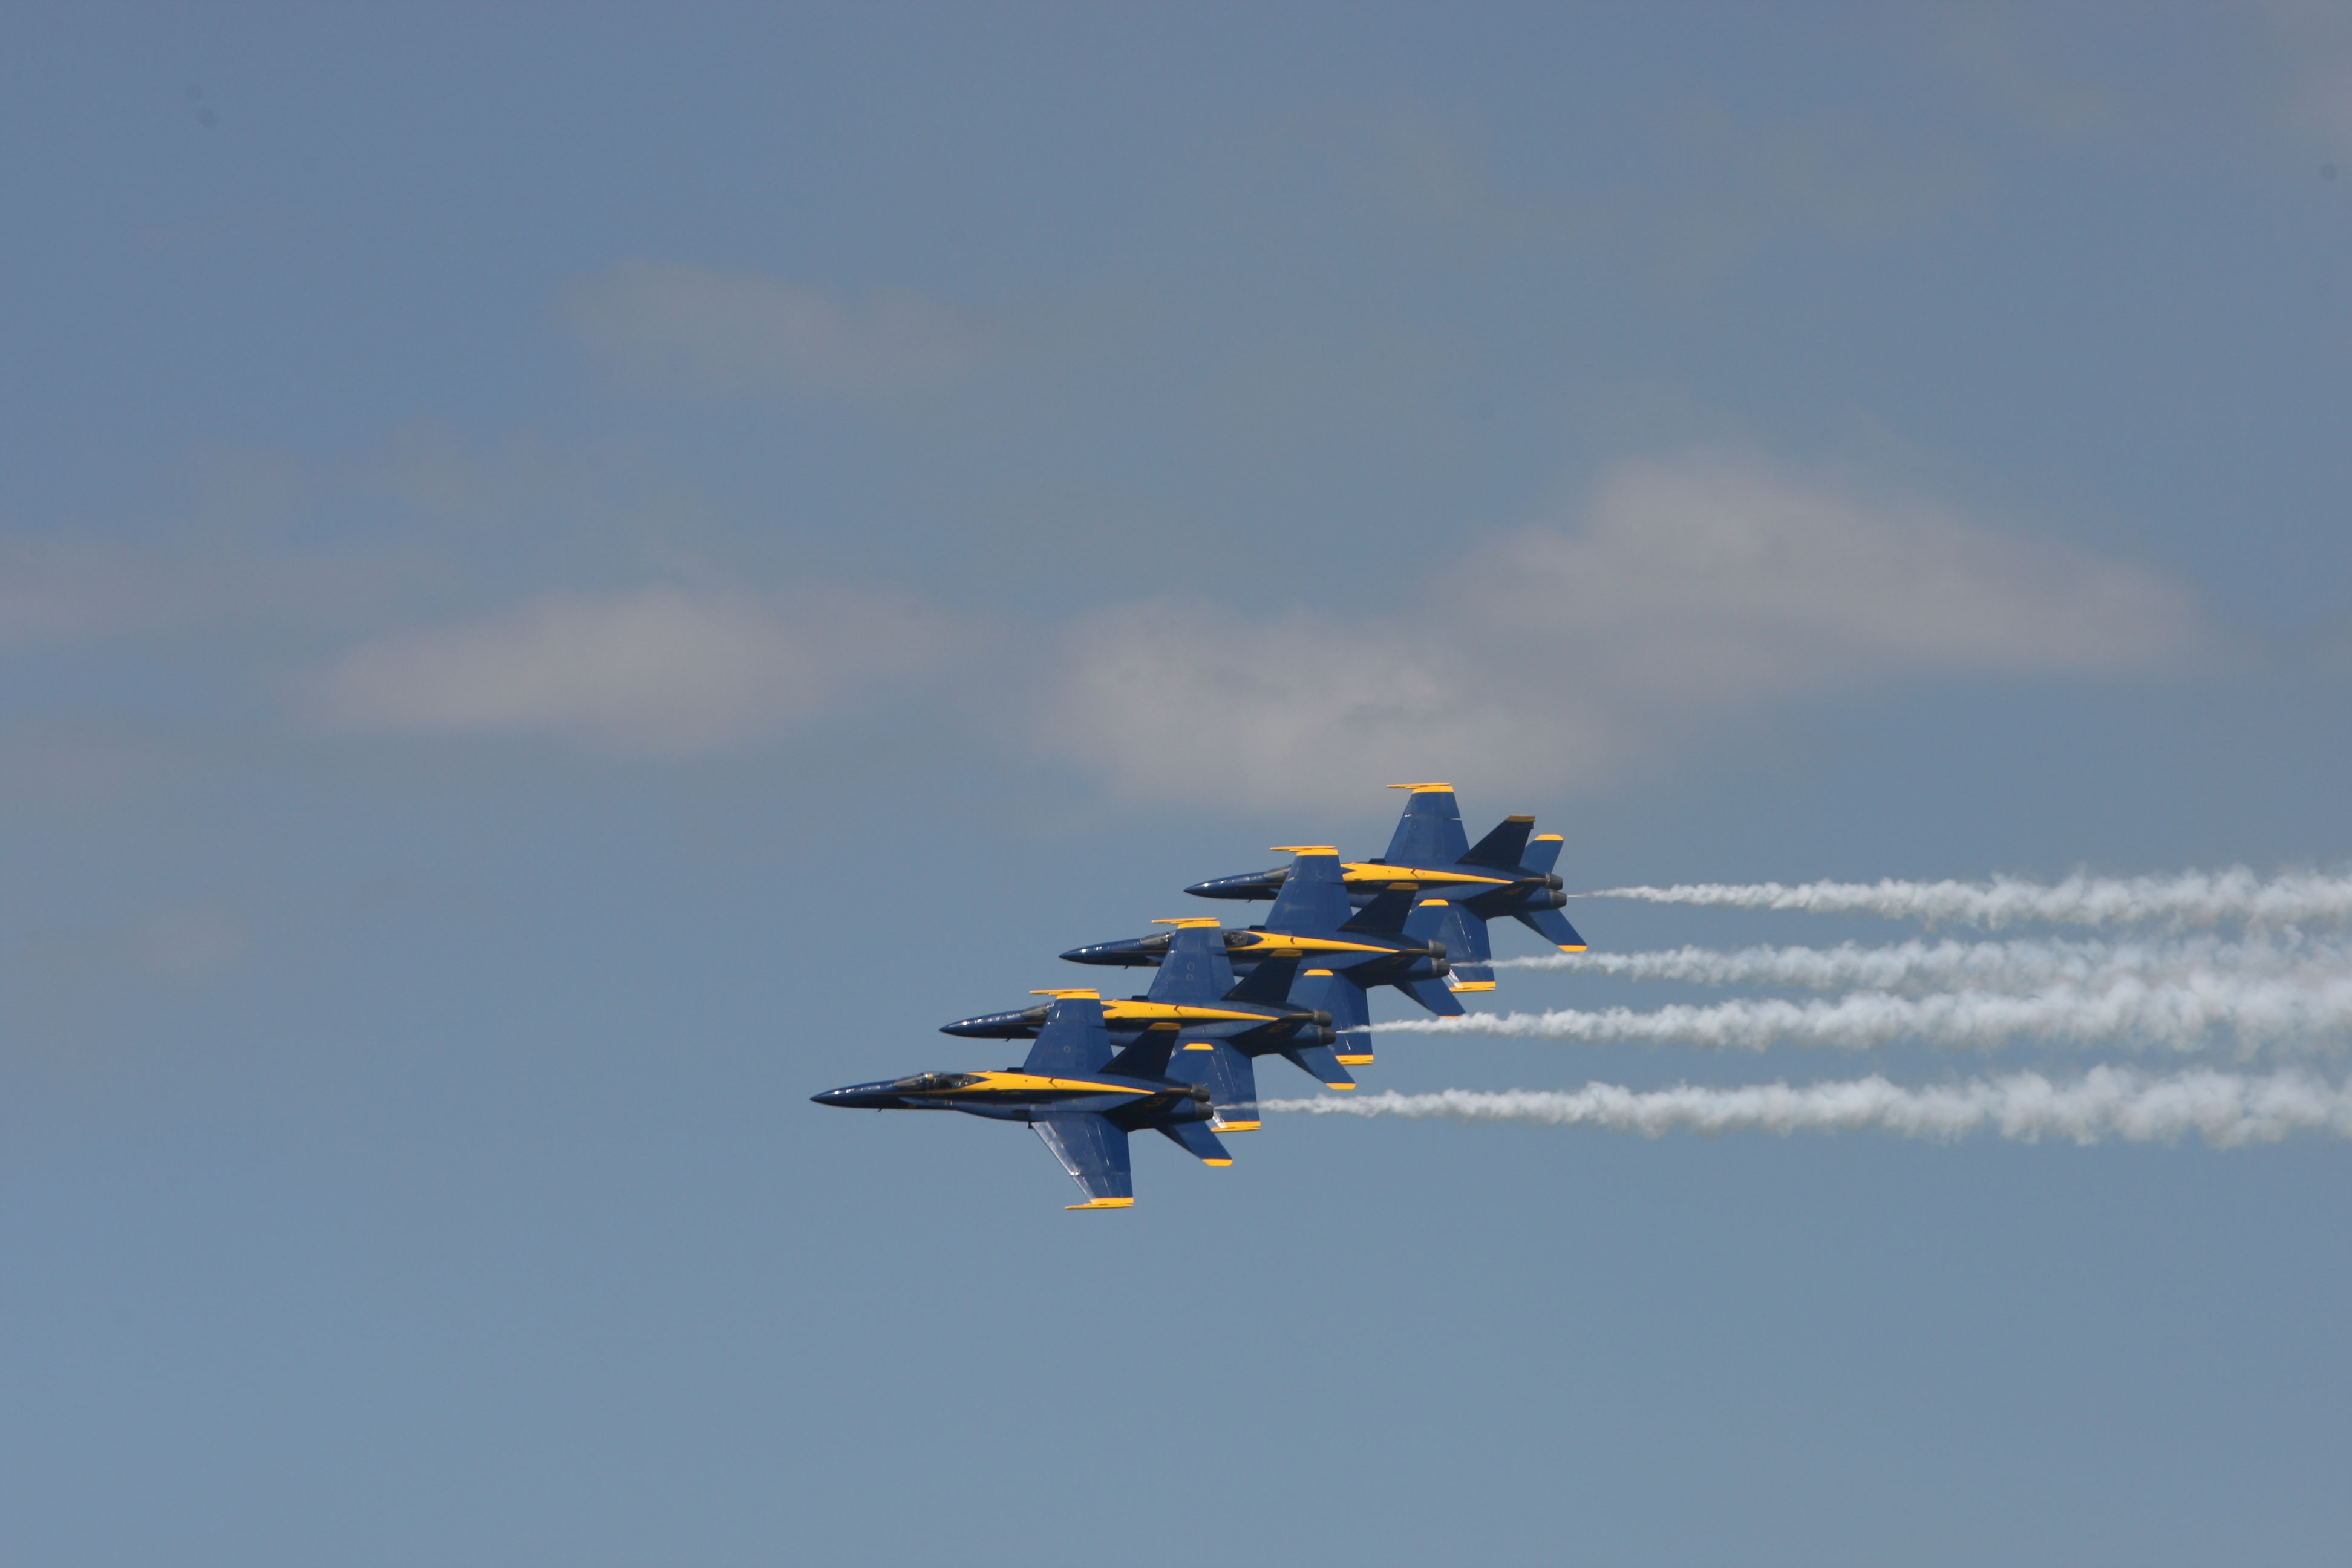 U.S. Navy's Blue Angels to fly over Los Angeles